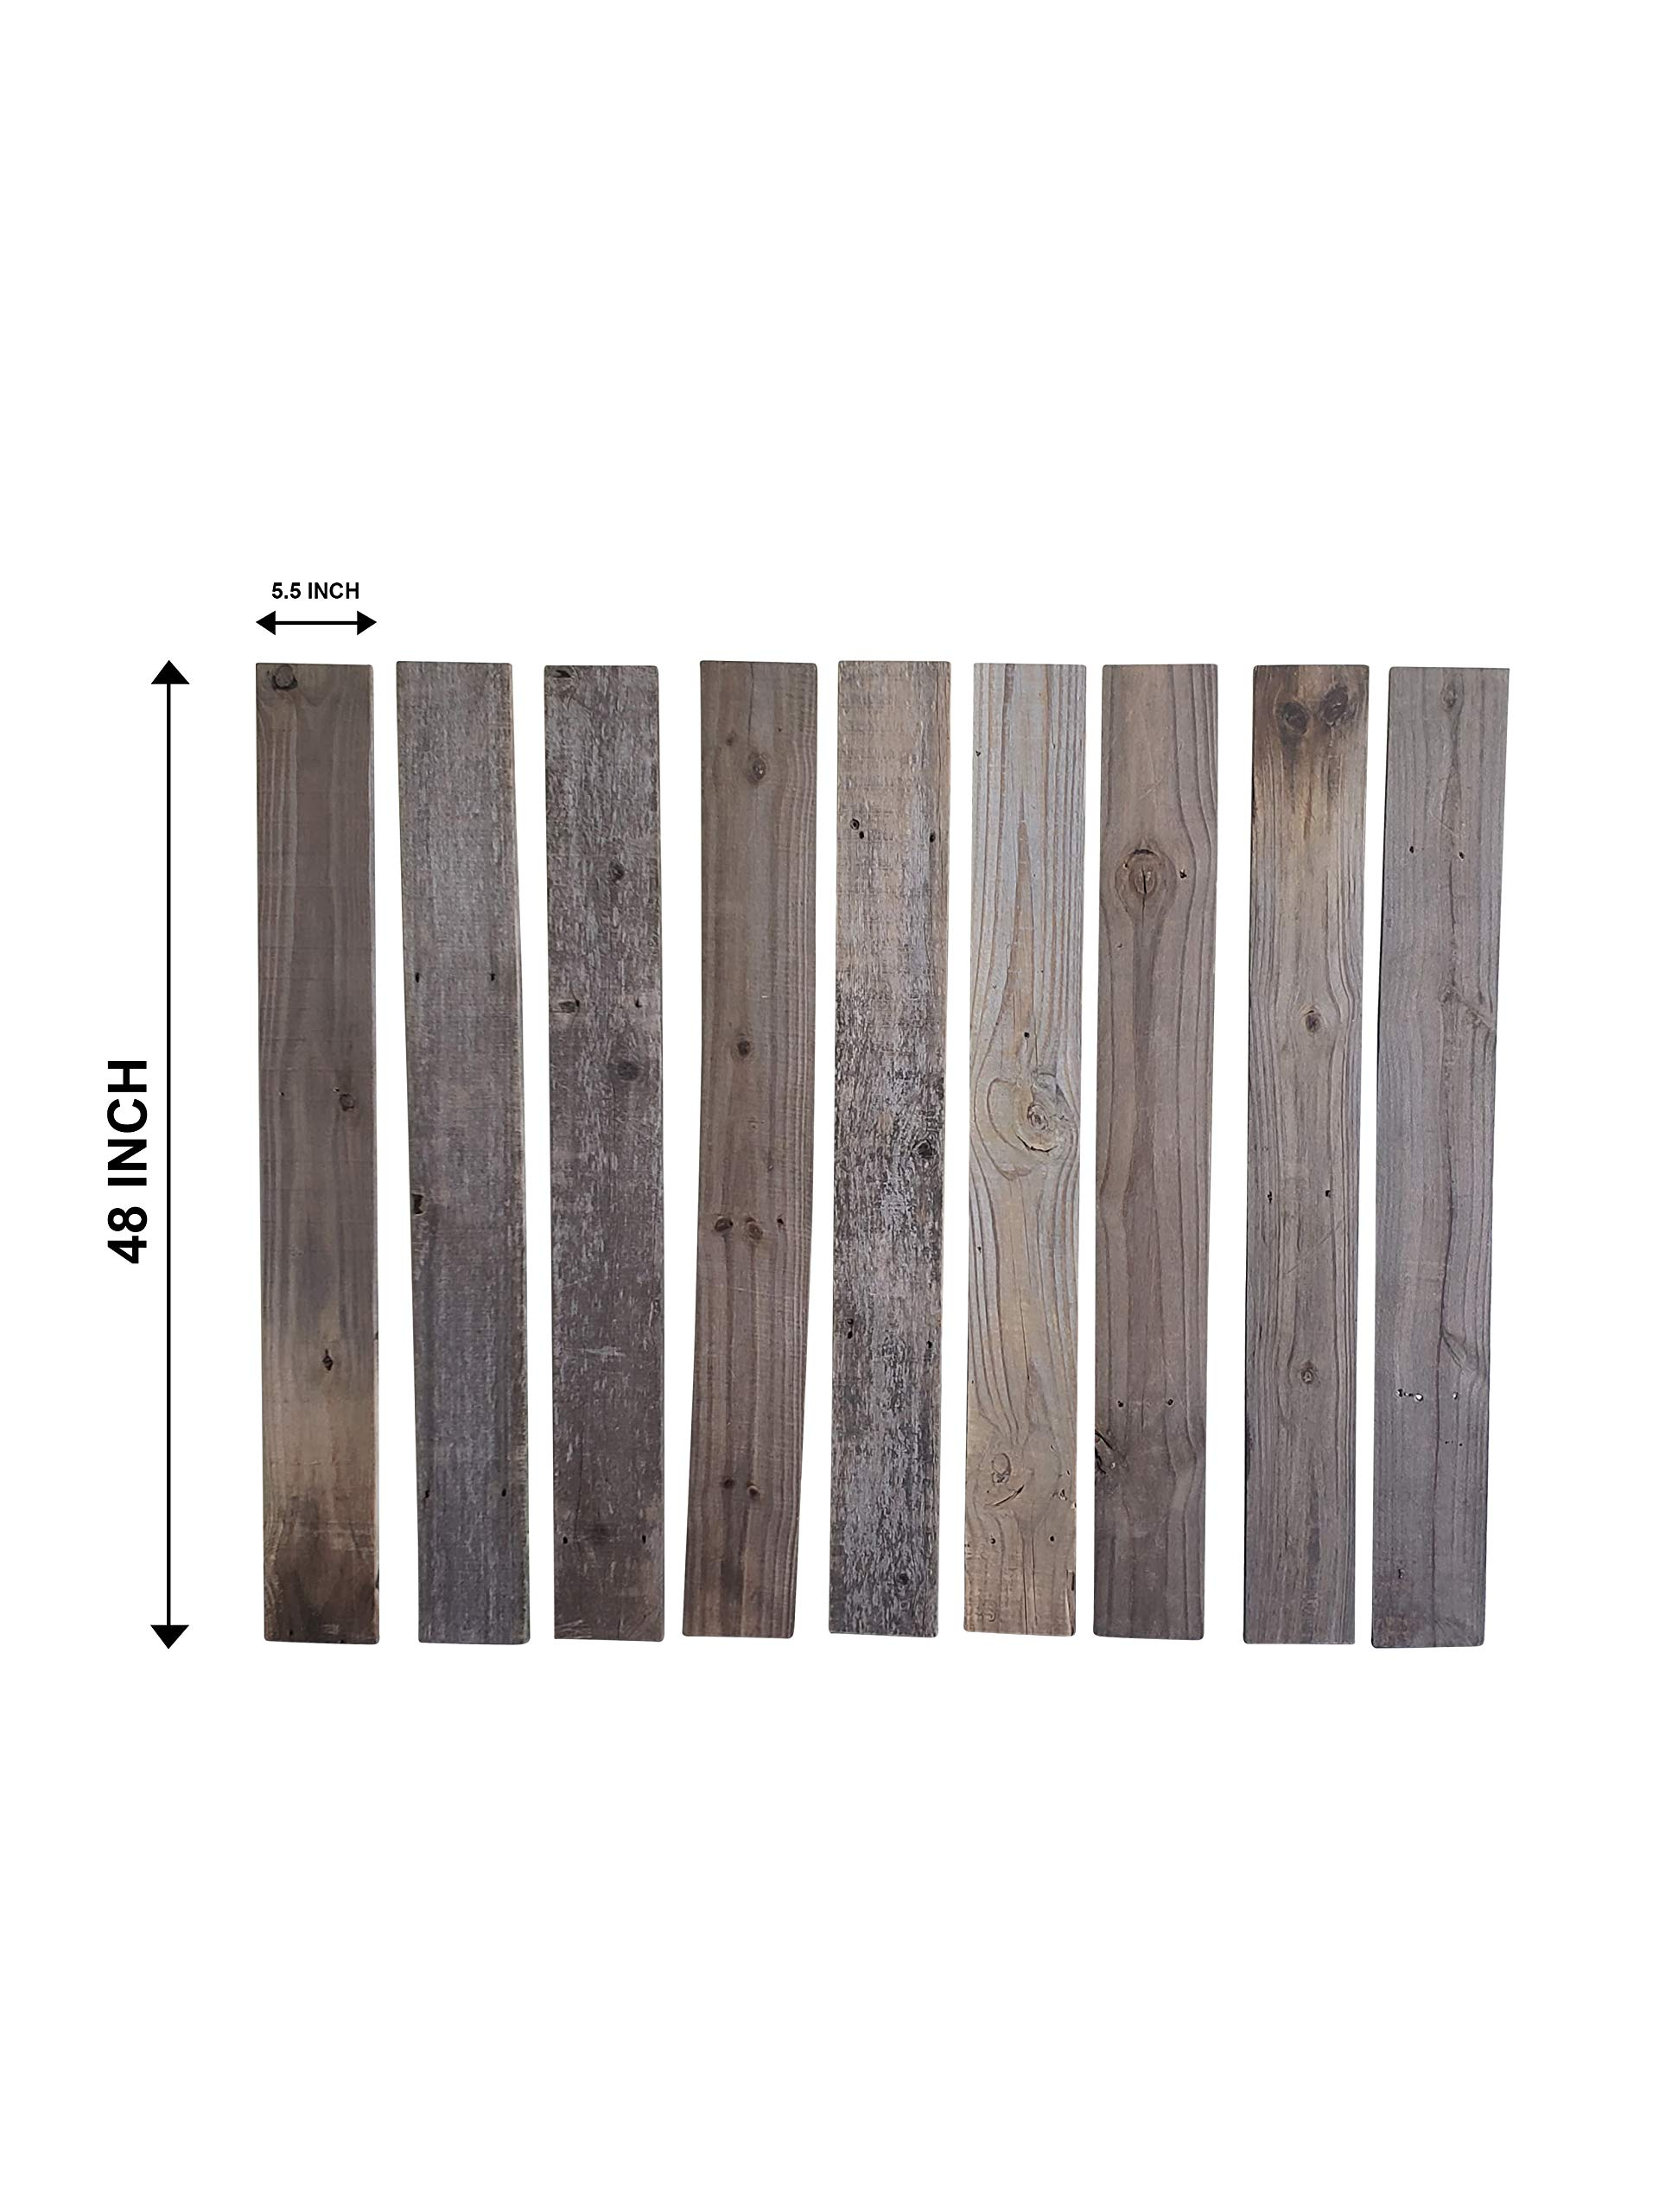 Rustic Weathered Reclaimed Wood Planks for DIY Crafts, Projects and Decor (9 Planks - 5.5''x48'')